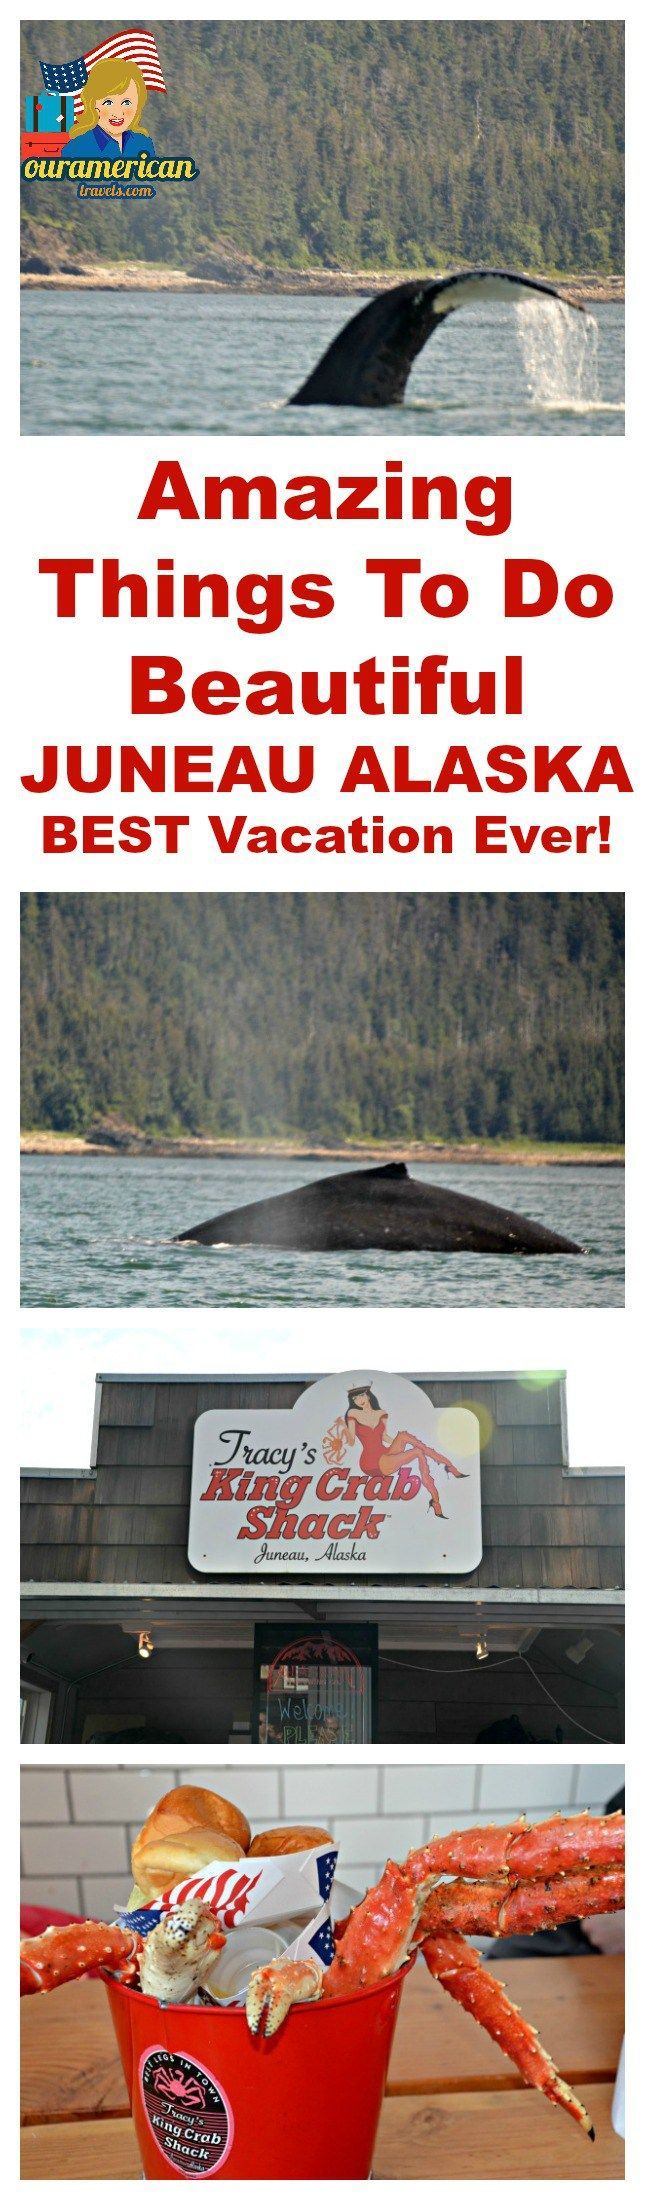 Amazing Things To Do Beautiful Juneau Alaska